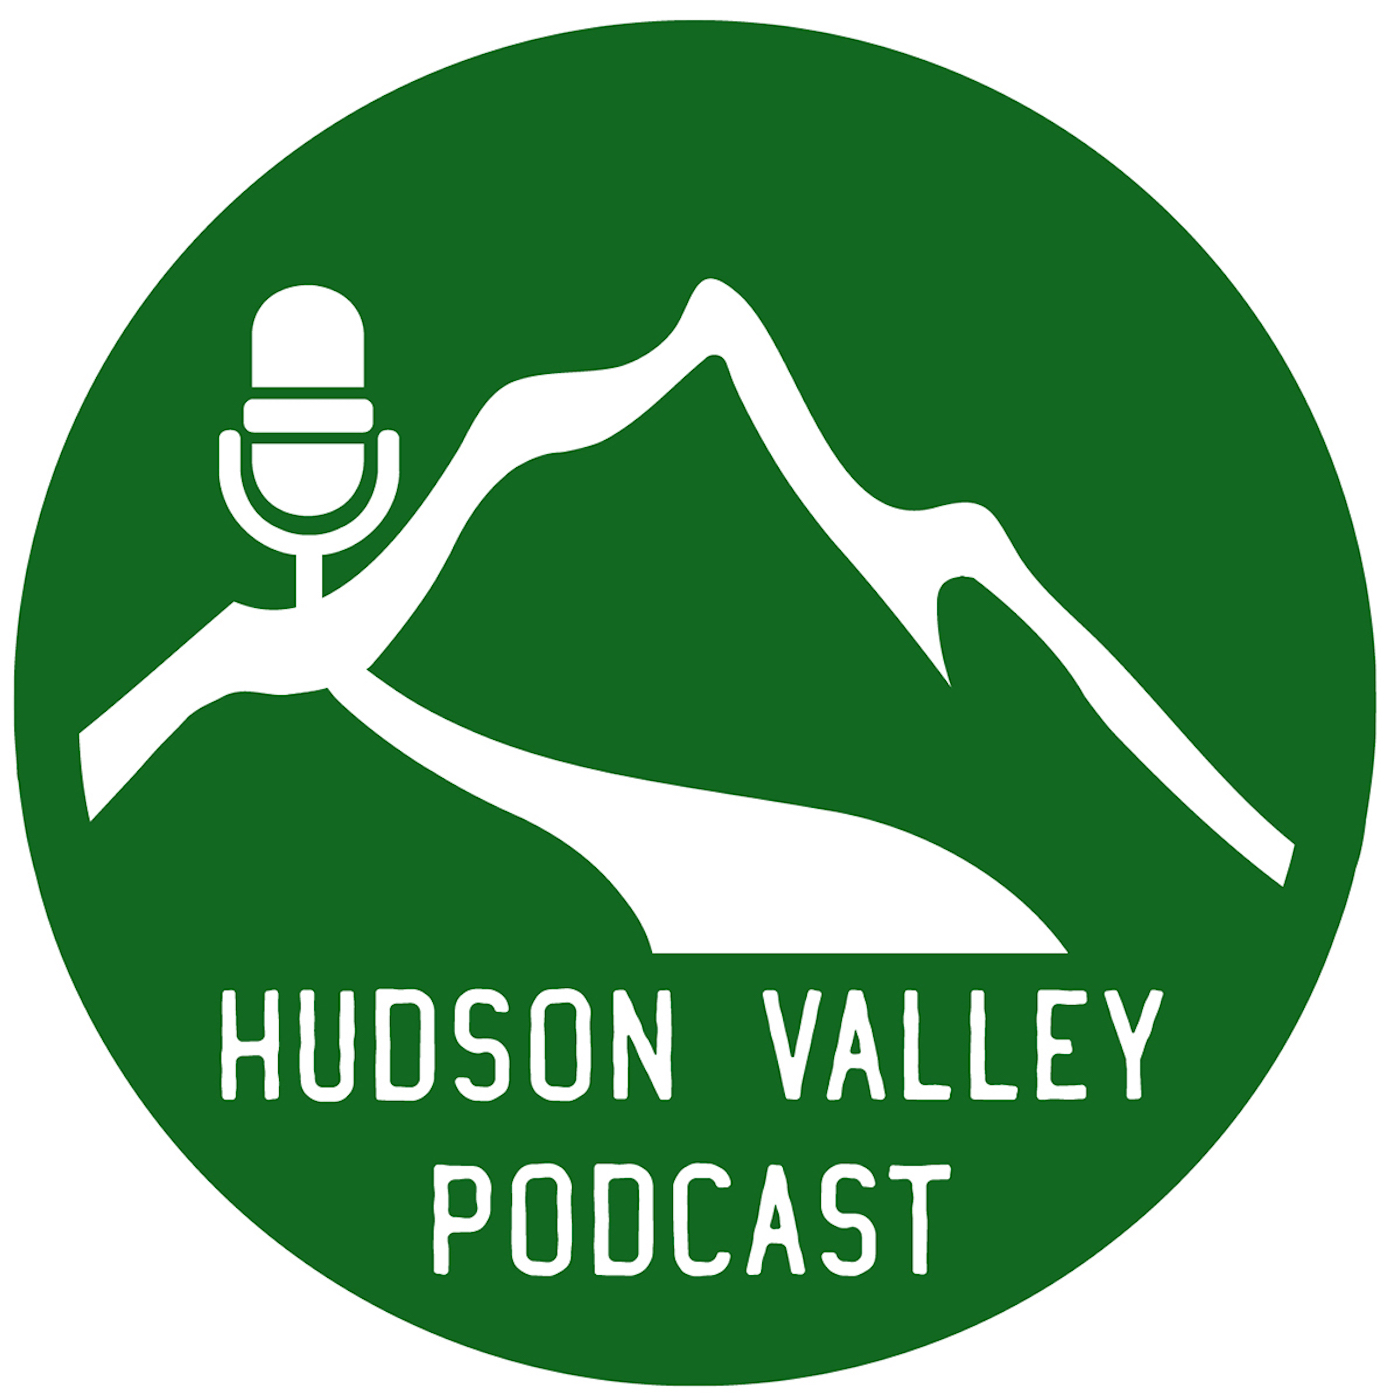 The Hudson Valley Podcast